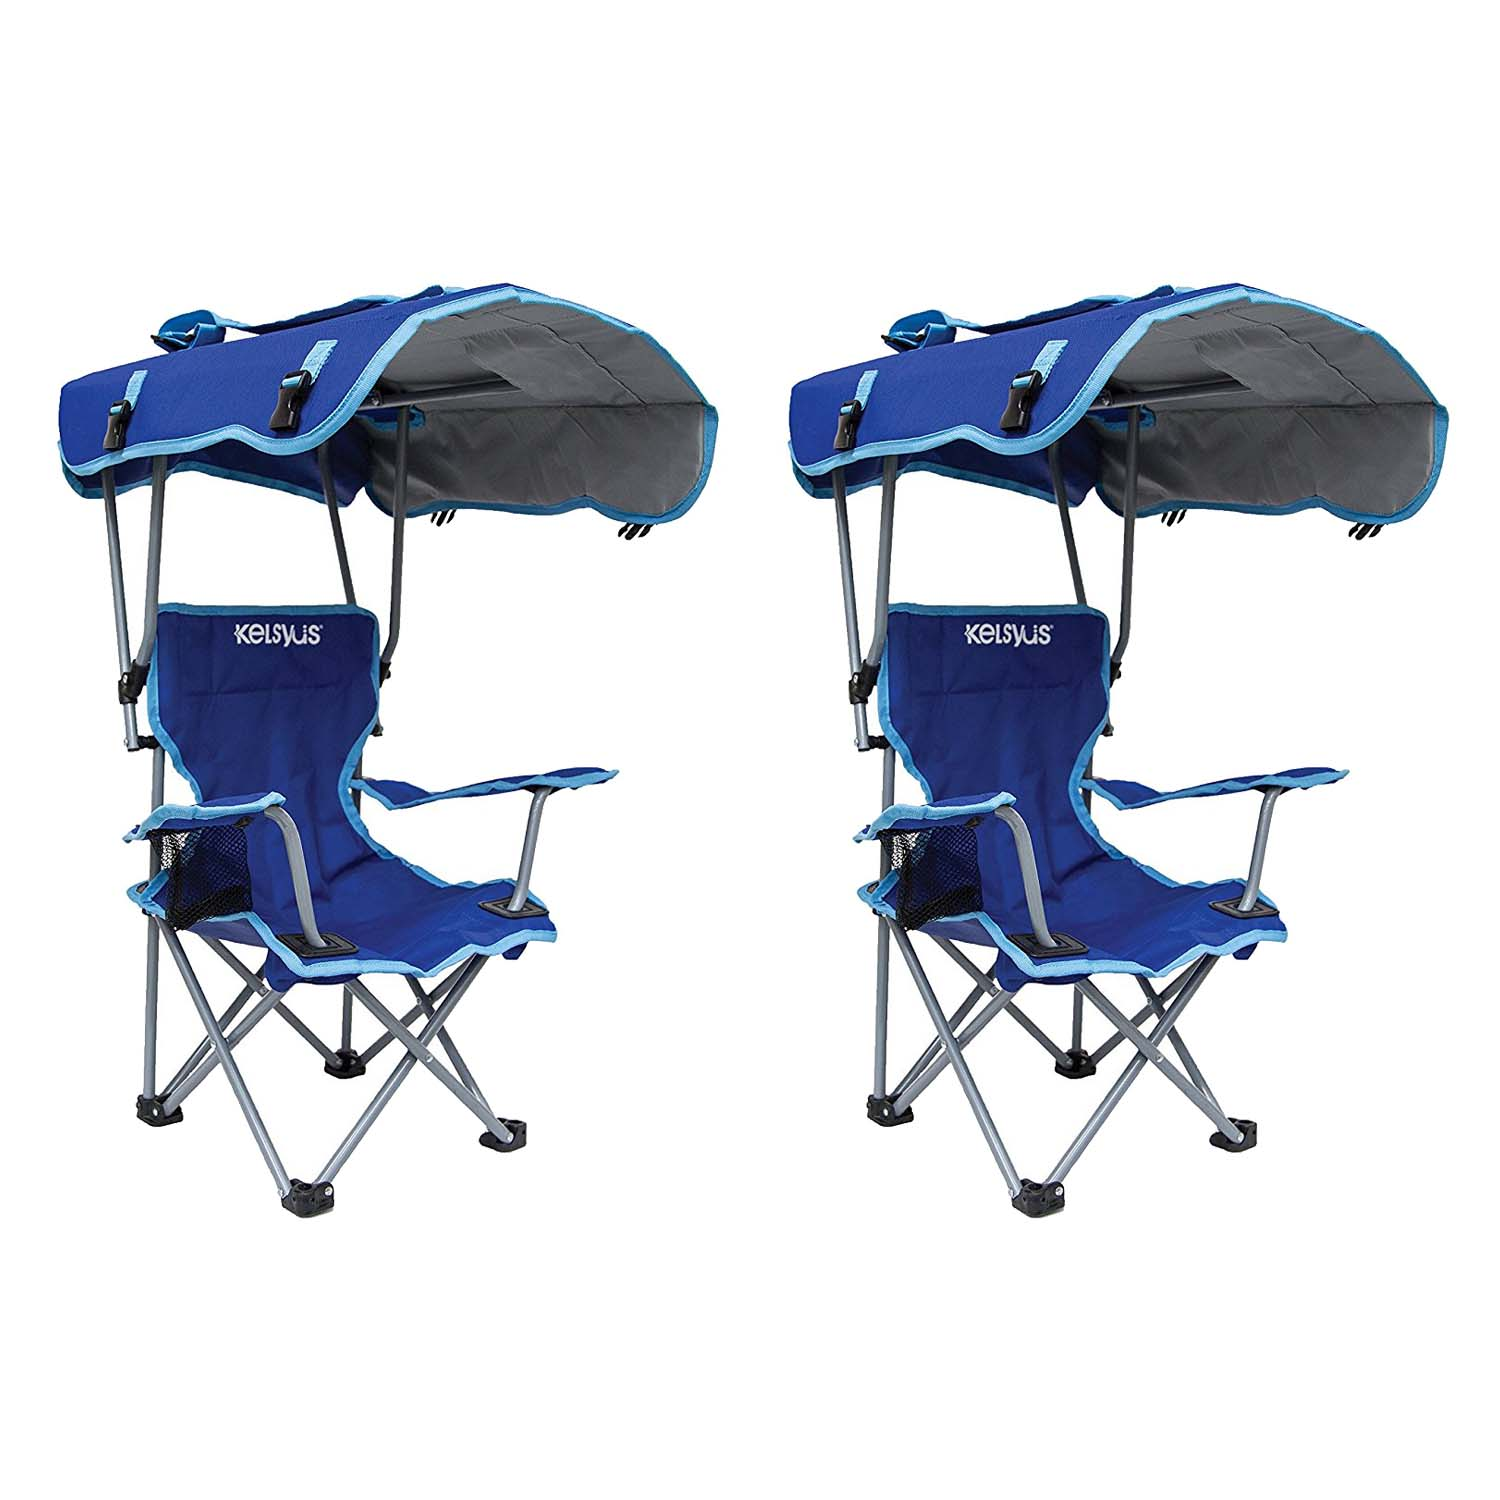 folding chair with canopy kelsyus kids original canopy folding backpack lounge chair (2 pack) blue | XMFAWLB